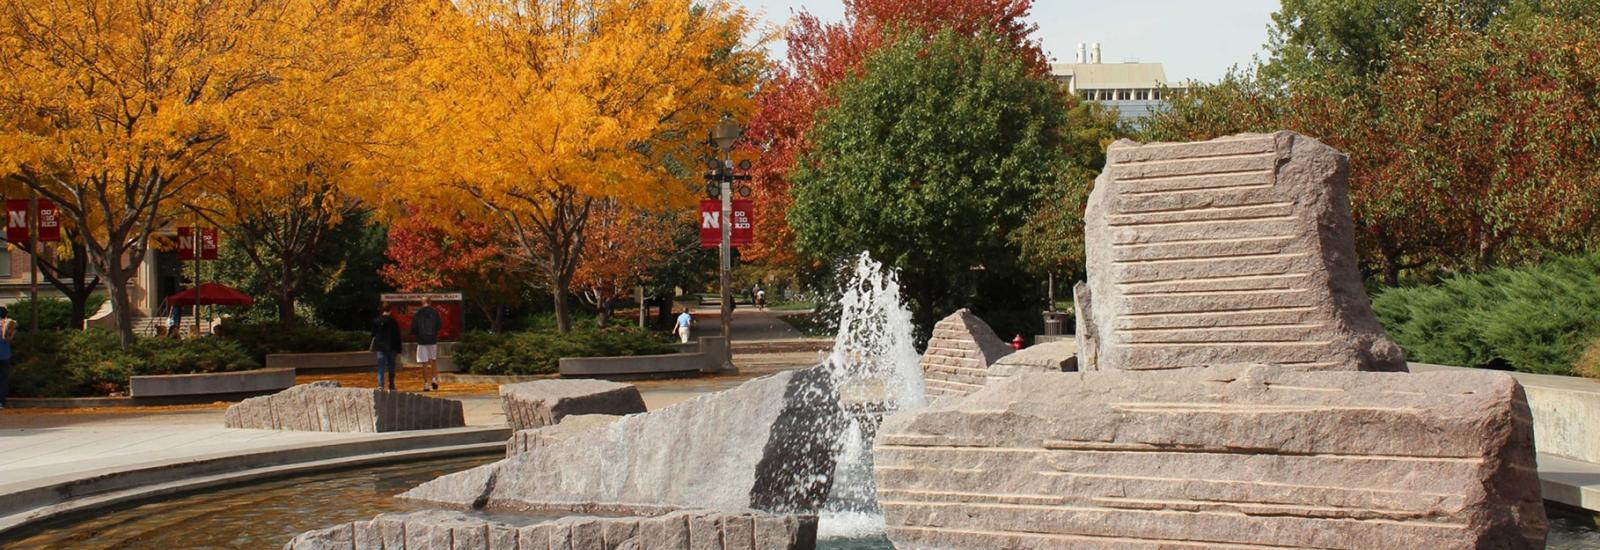 Broyhill Fountain in the Fall